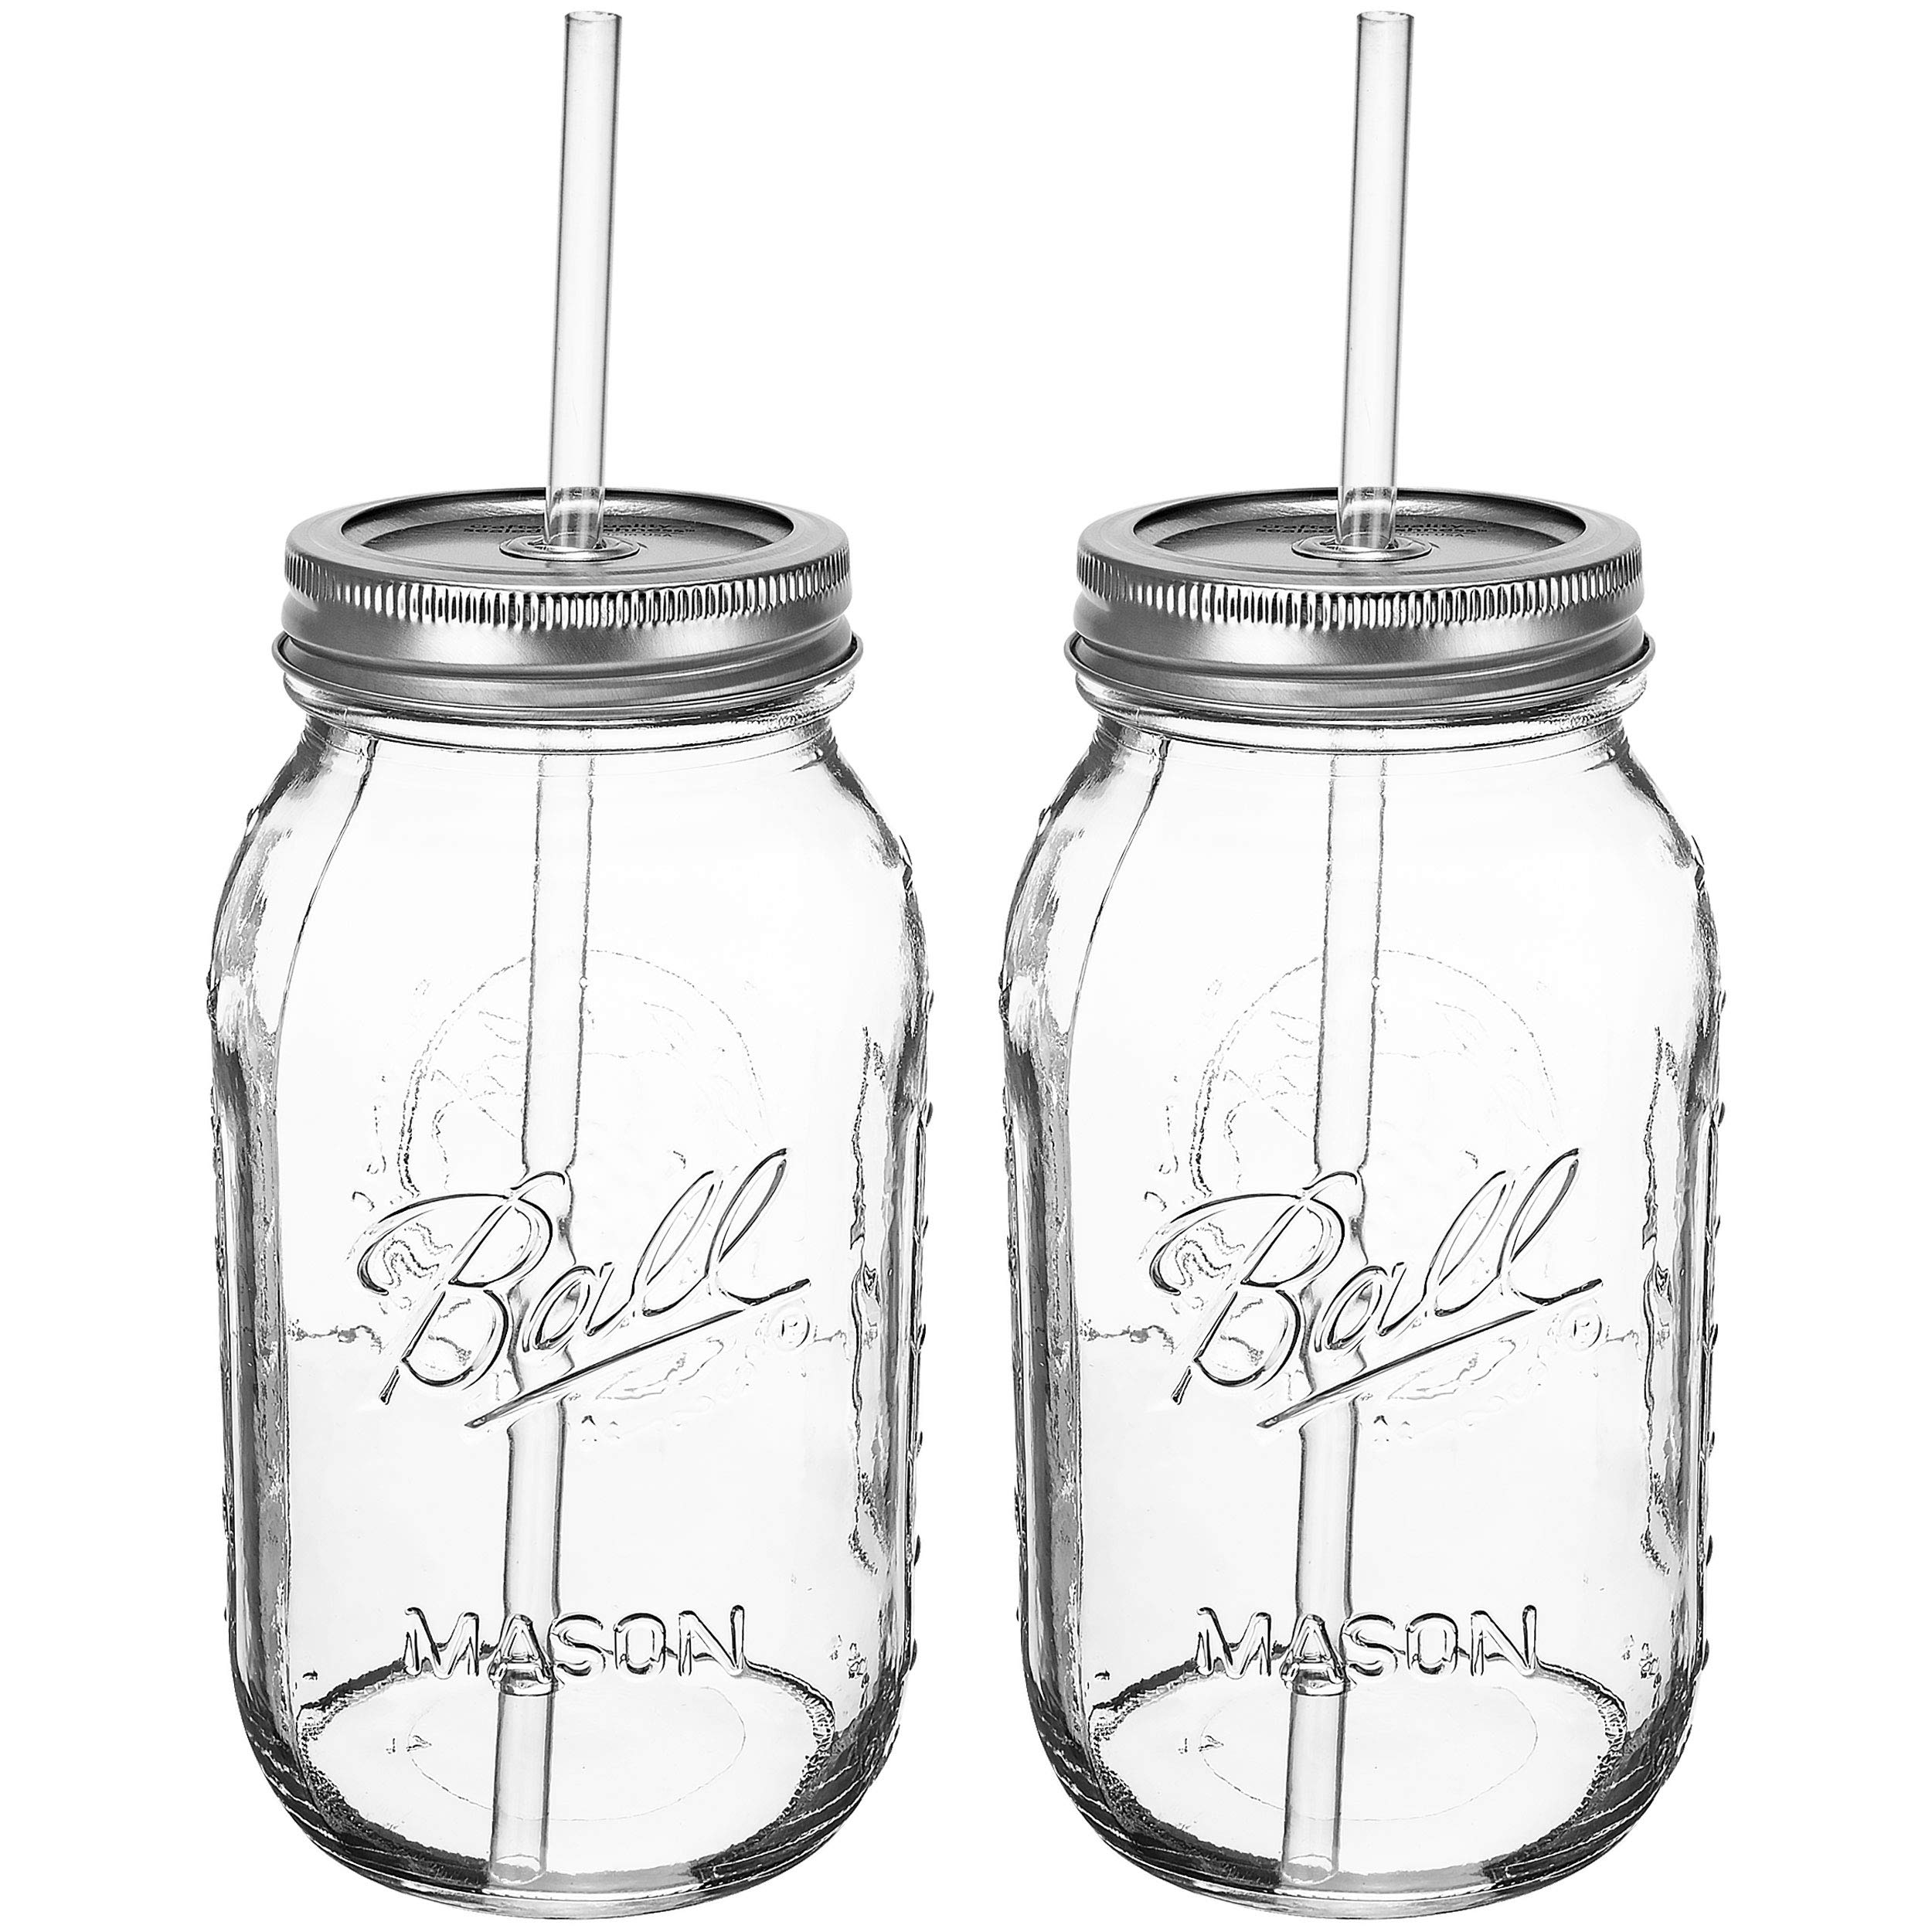 Ball RNWG-SIP-32OZ-2PK Guzzler Set a 32oz Mason Jar + Sippin' Lid + Acrylic Straw Reusable Novelty Cocktail Glasses Shabby Chic, 2 Pack Clear